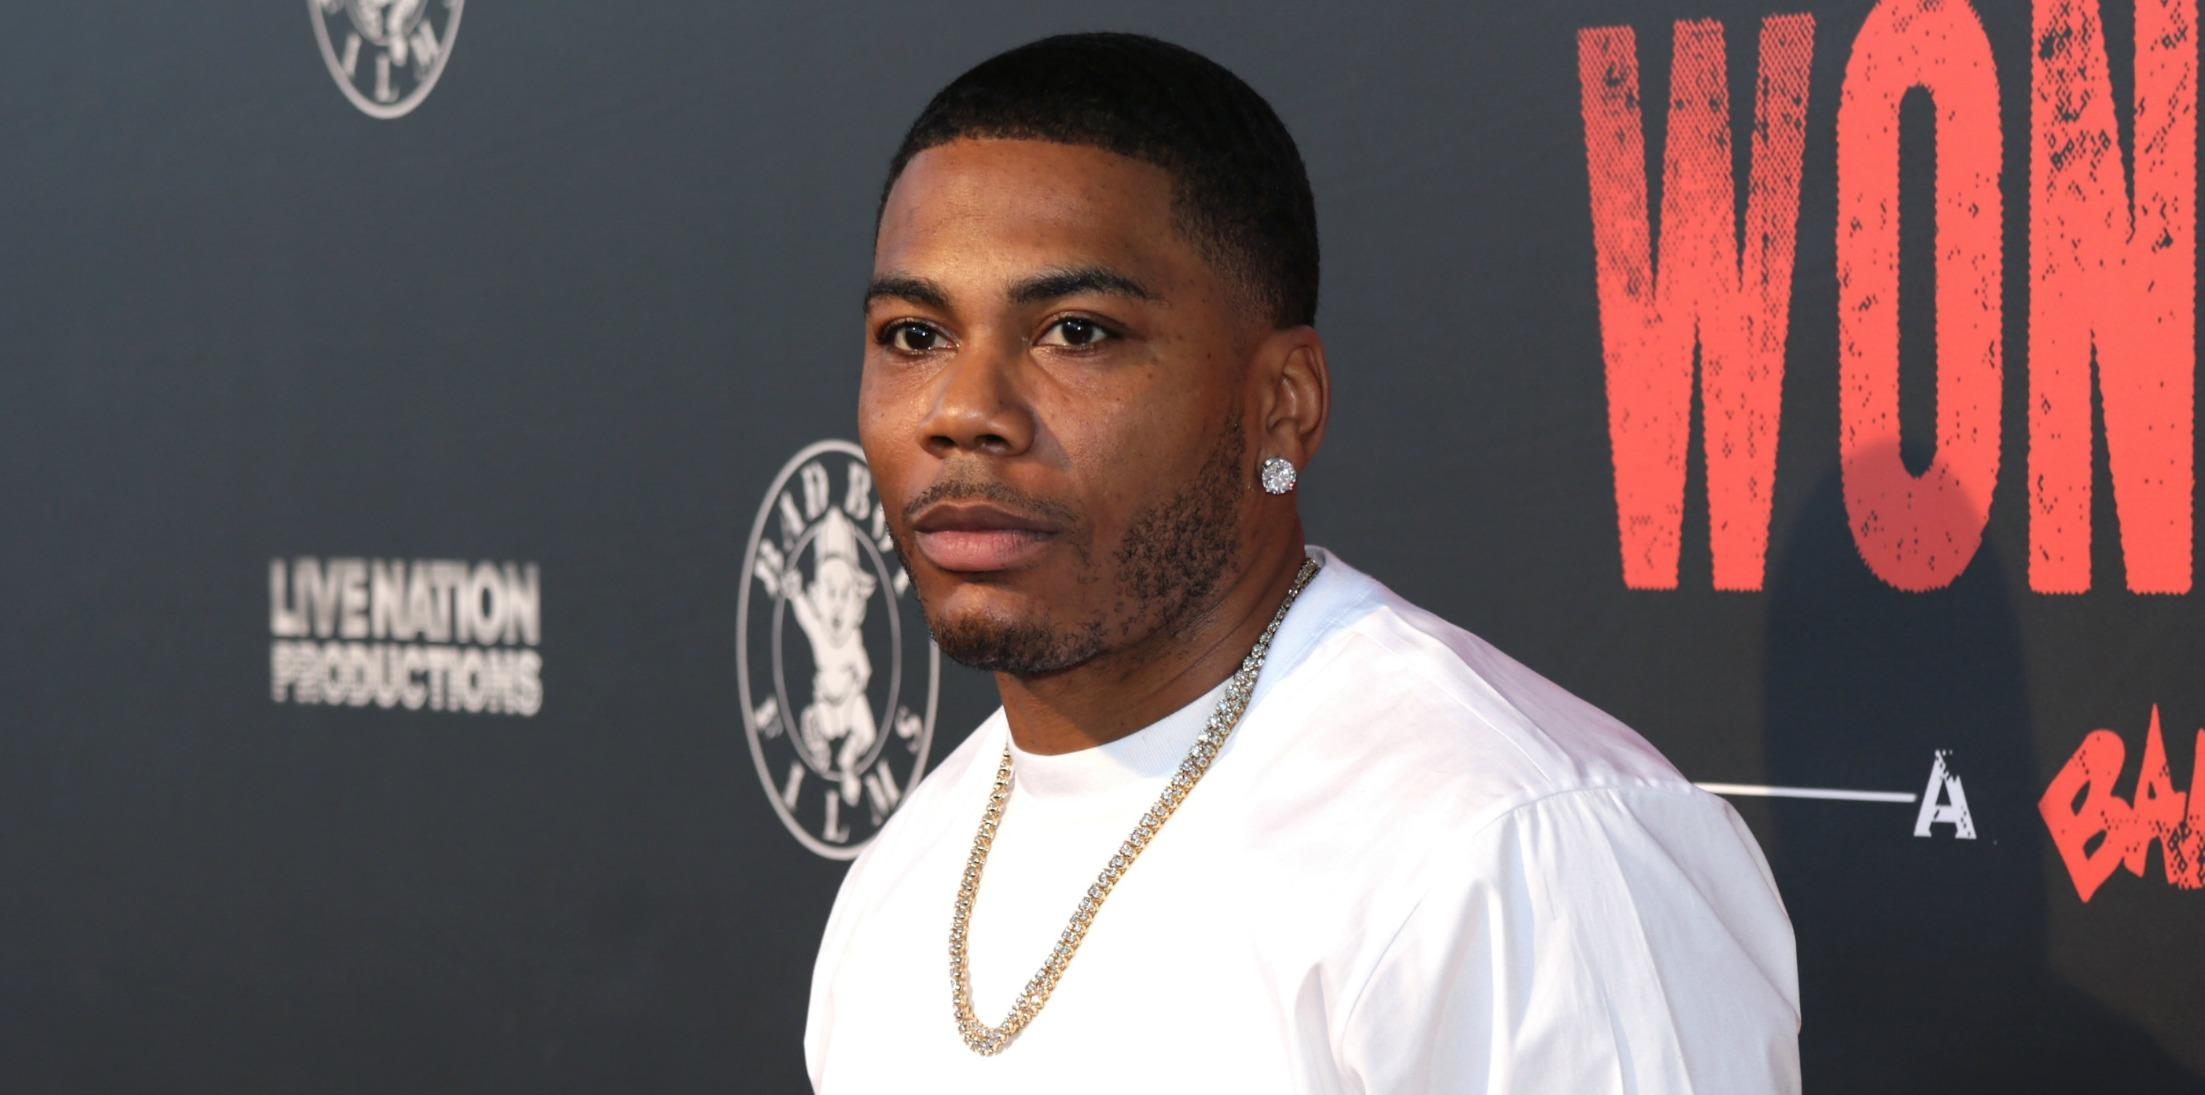 nelly arrested rape charges long